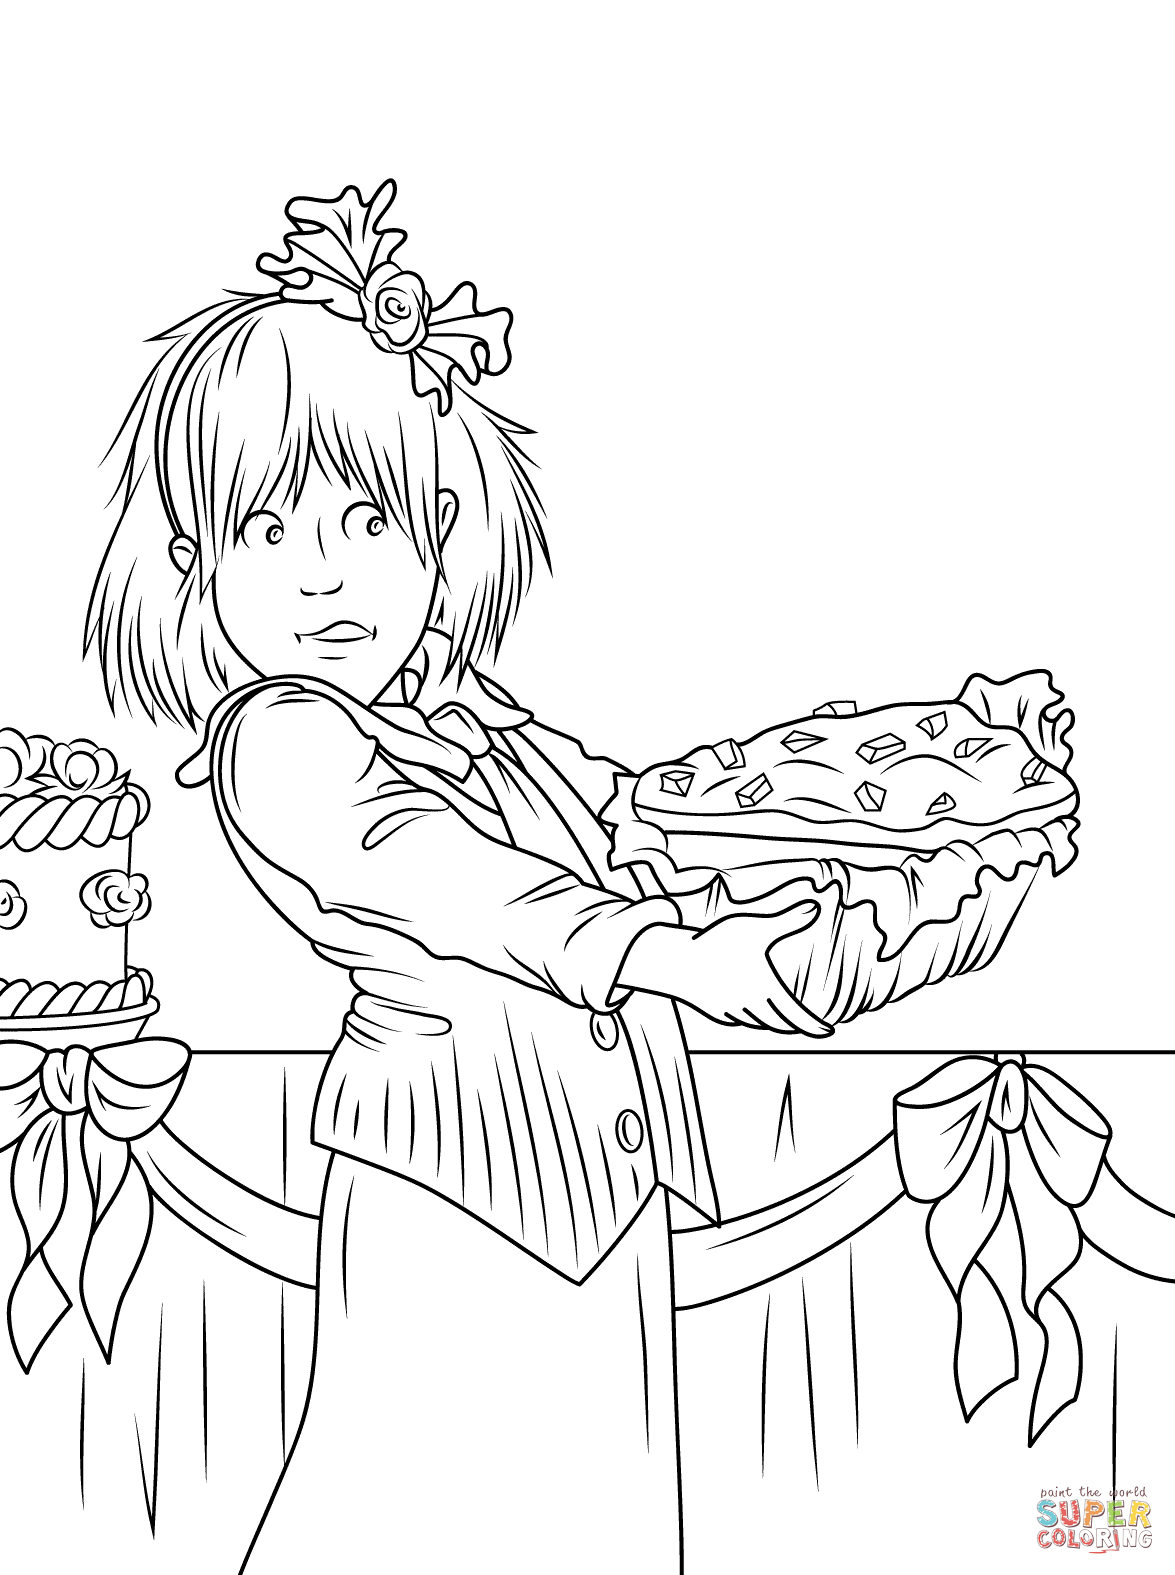 junie b jones coloring page - Junie B Jones Coloring Pages